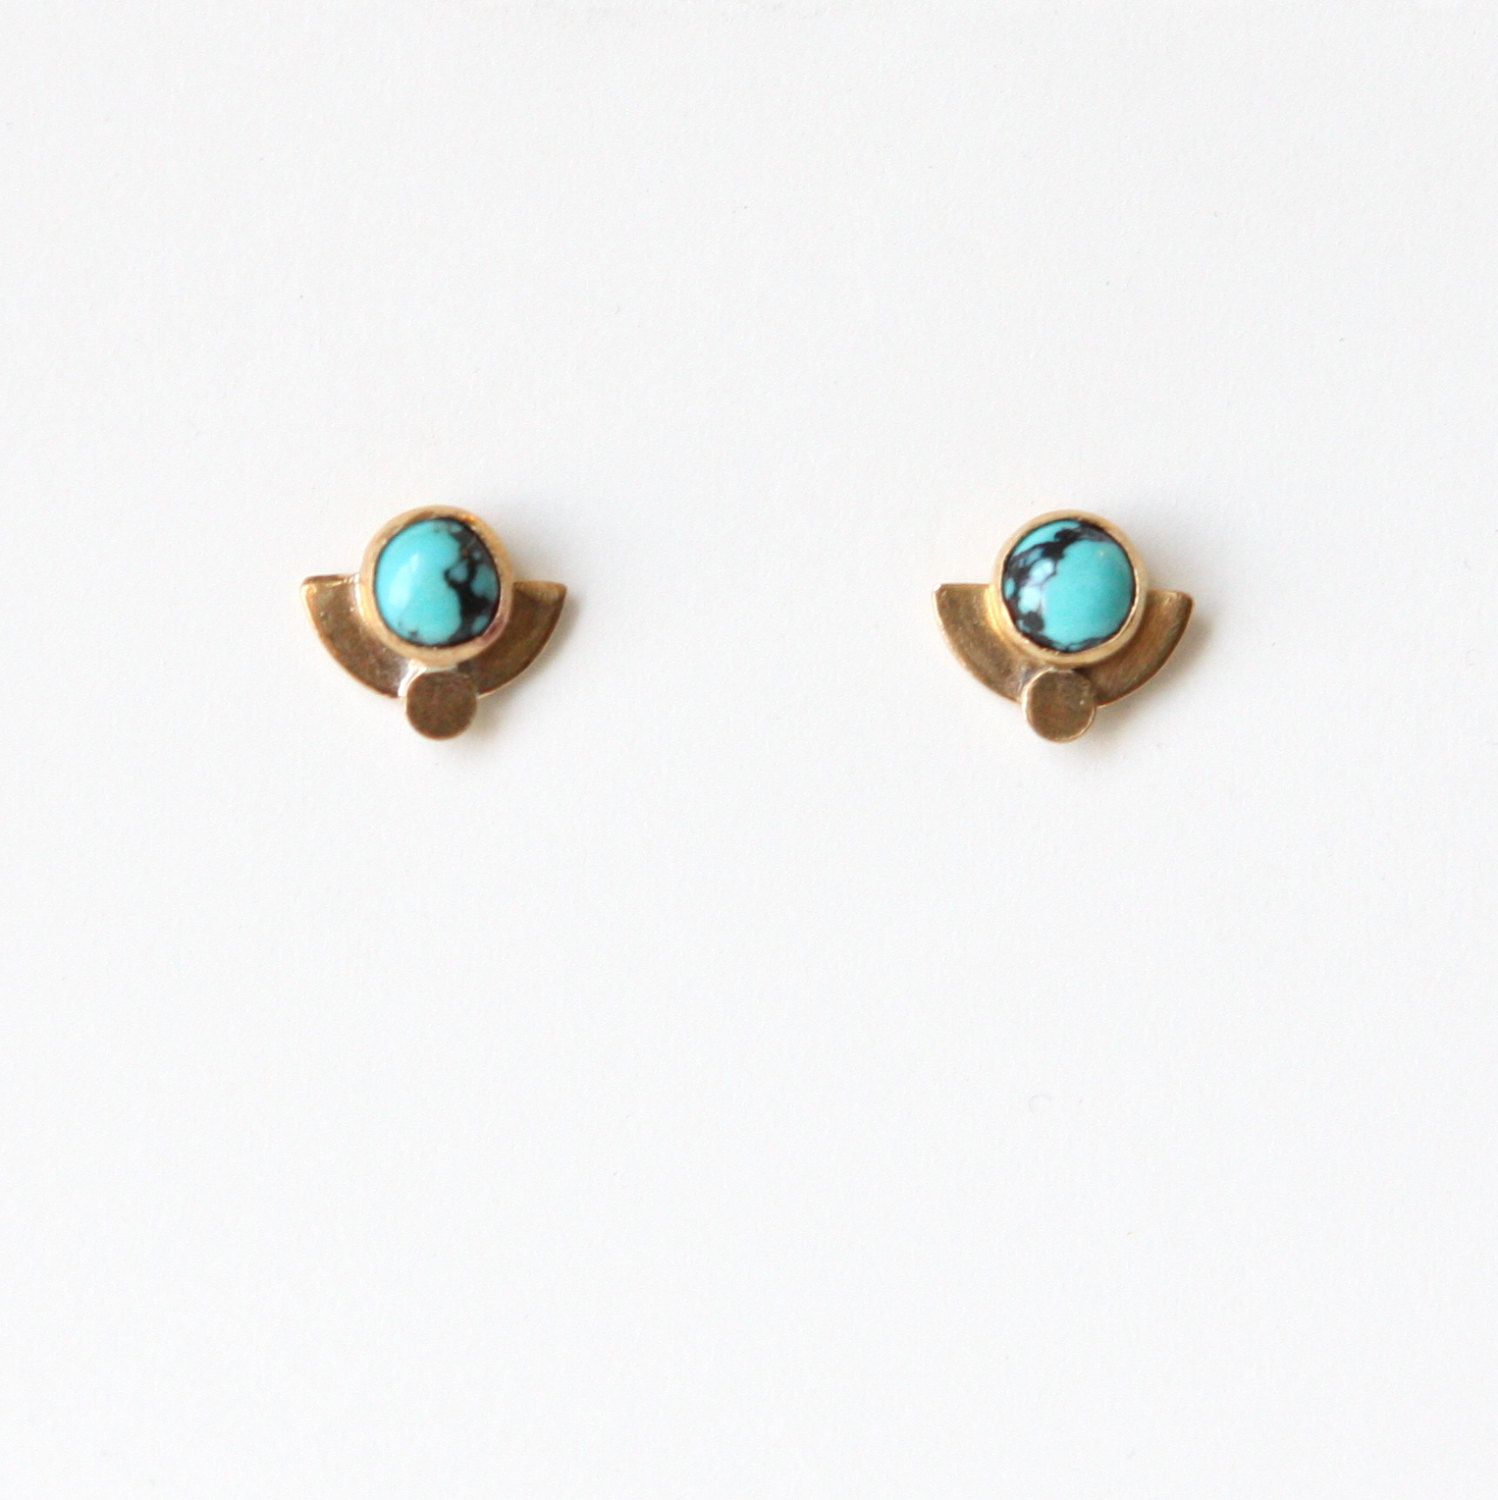 Handcrafted Turquoise Stud Earrings Etsy